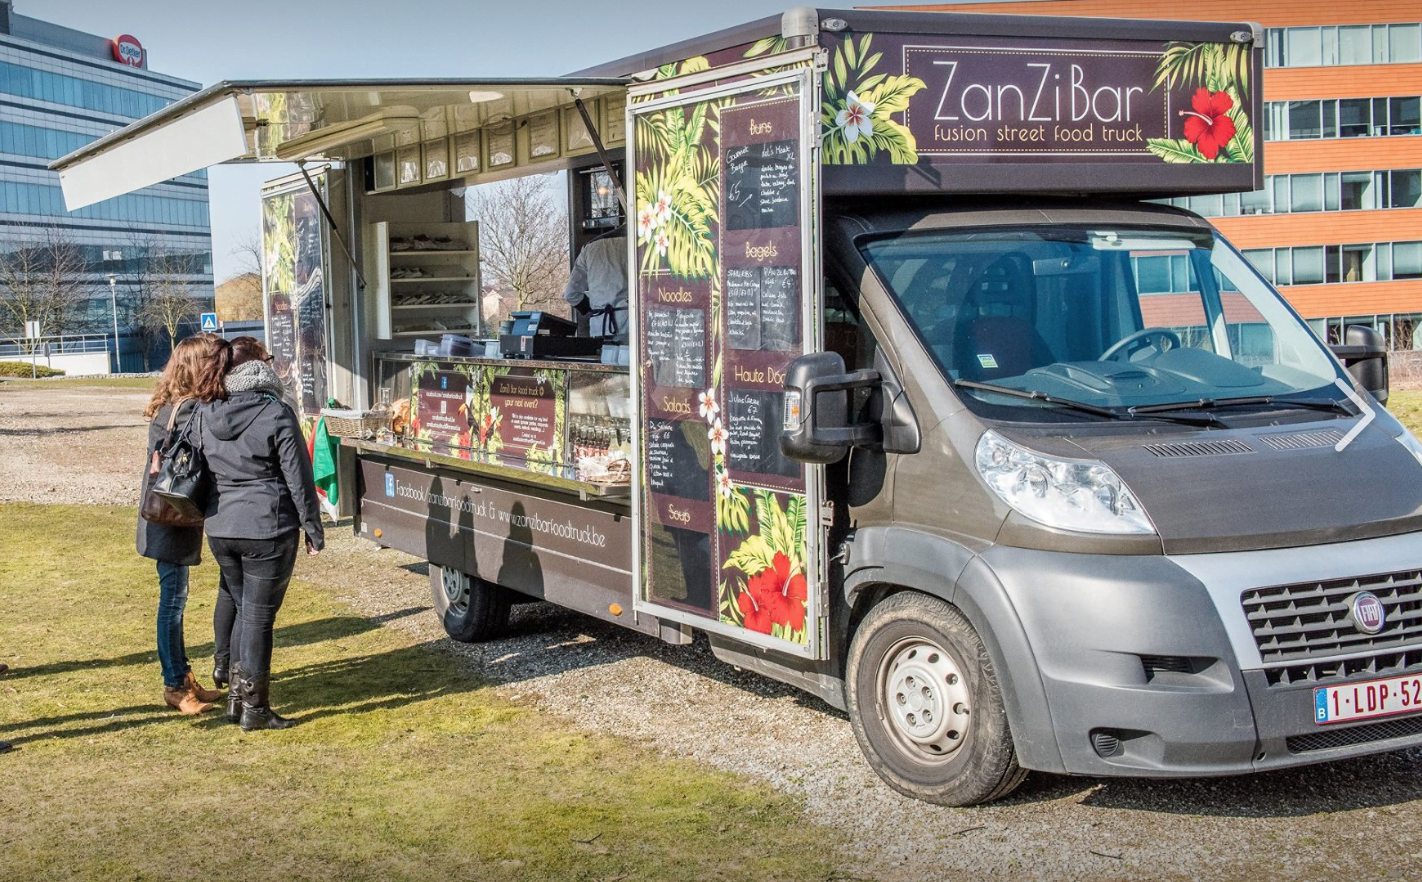 Zanzi Bar - Fusion Streetfood foodtruck